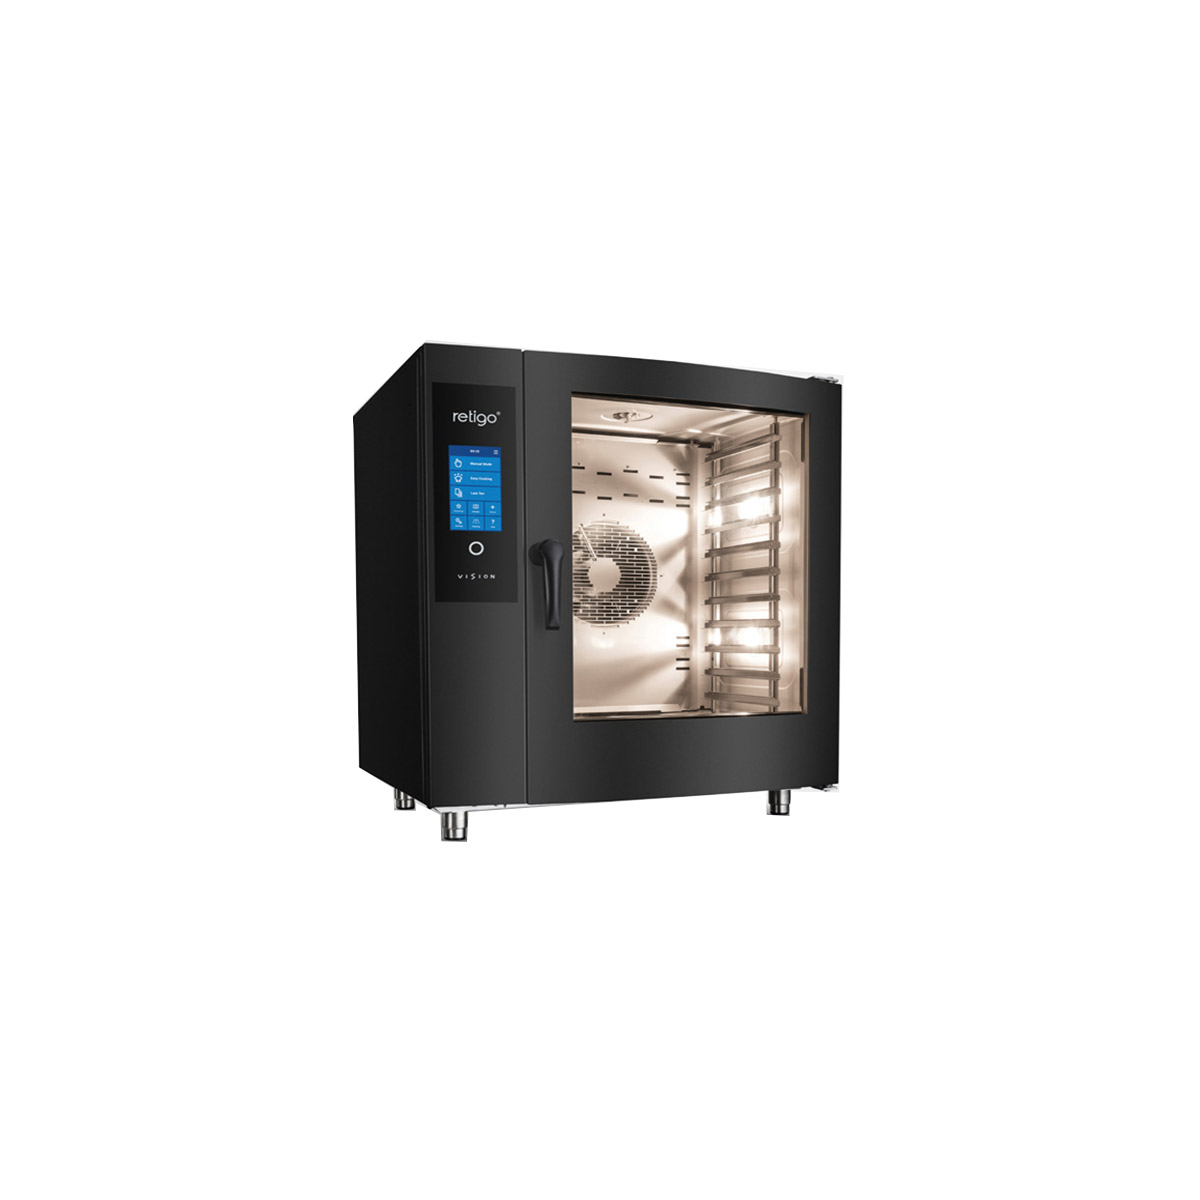 Retigo Blue Vision 10x Grid Combination Oven Limited Black Edition B1011 b